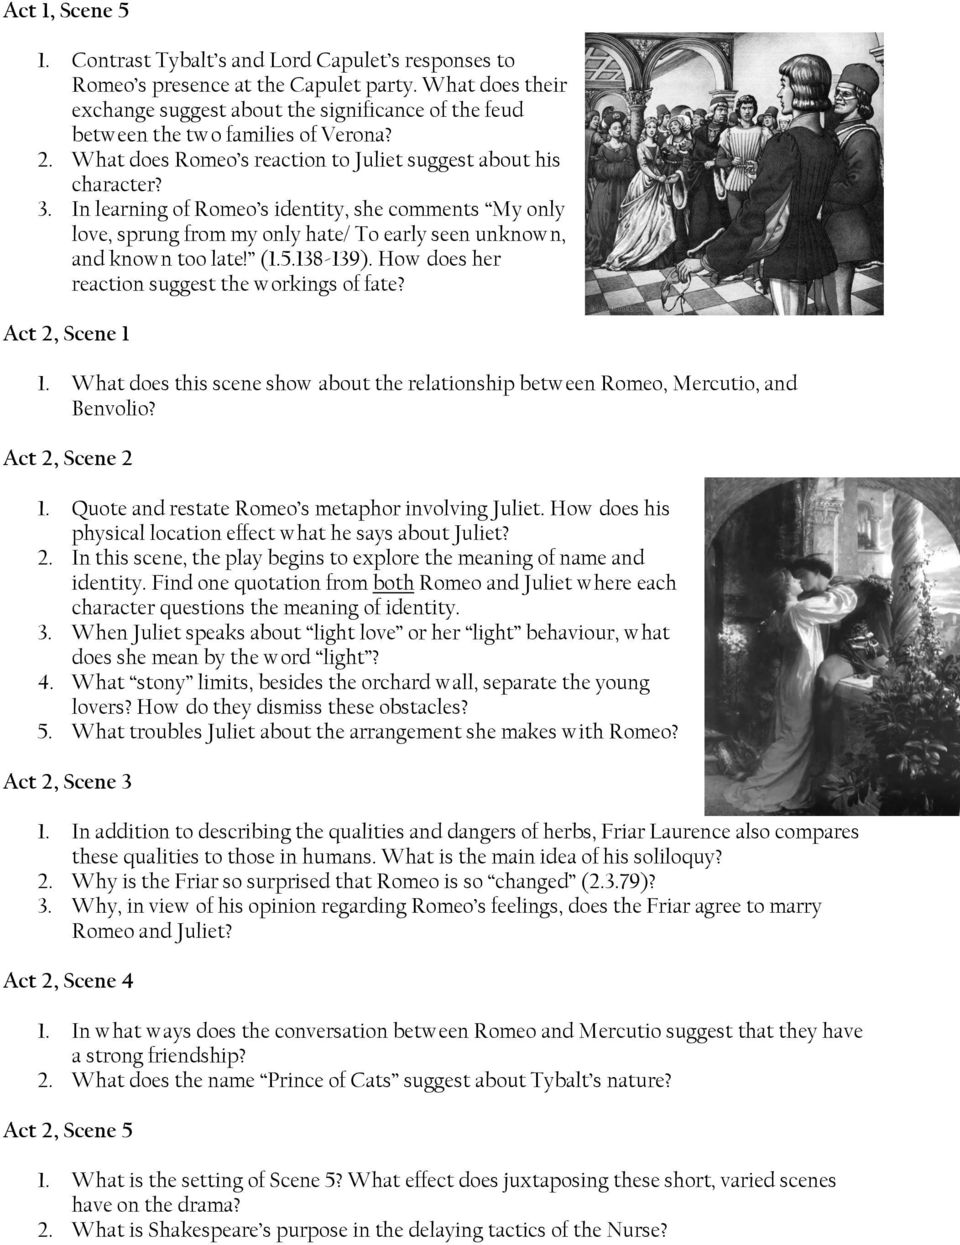 """how does shakespeare show strong feelings in act 1 scene 5 romeo and juliet Free essay: act 1 scene 5 is the most important scene in romeo and juliet   romeo and juliet who fall in love, nurse who works for the capletshow more   this part of the scene also uses stronger words like """"rich jewel in an ethiop's  ear""""  dramatic effects in act 3 scene 5 of william shakespeare's romeo and  juliet."""